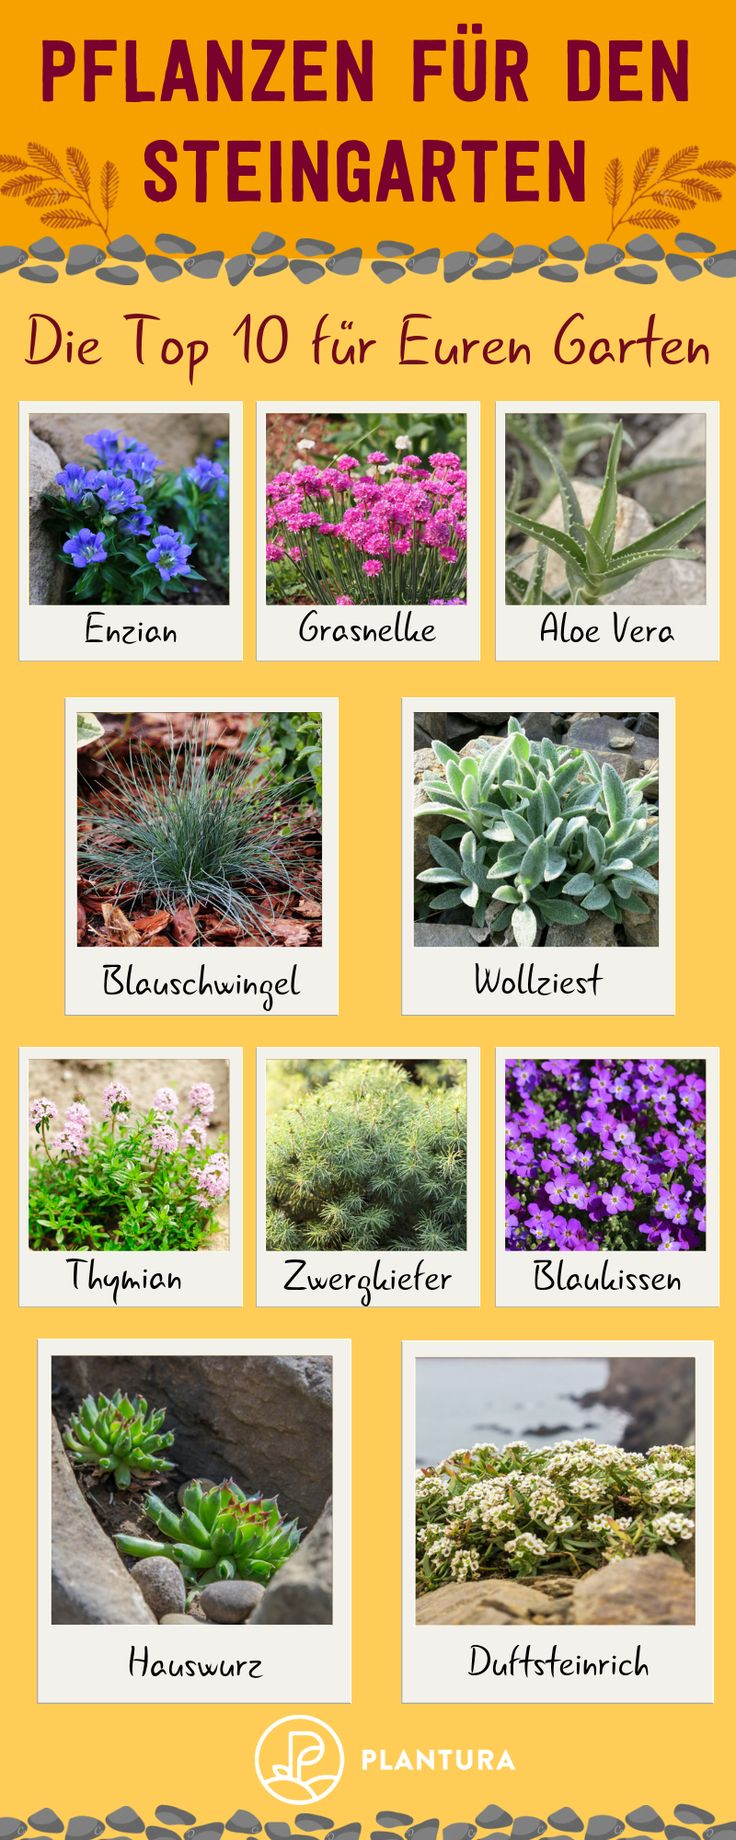 Plants for the rock garden: Our Top 10